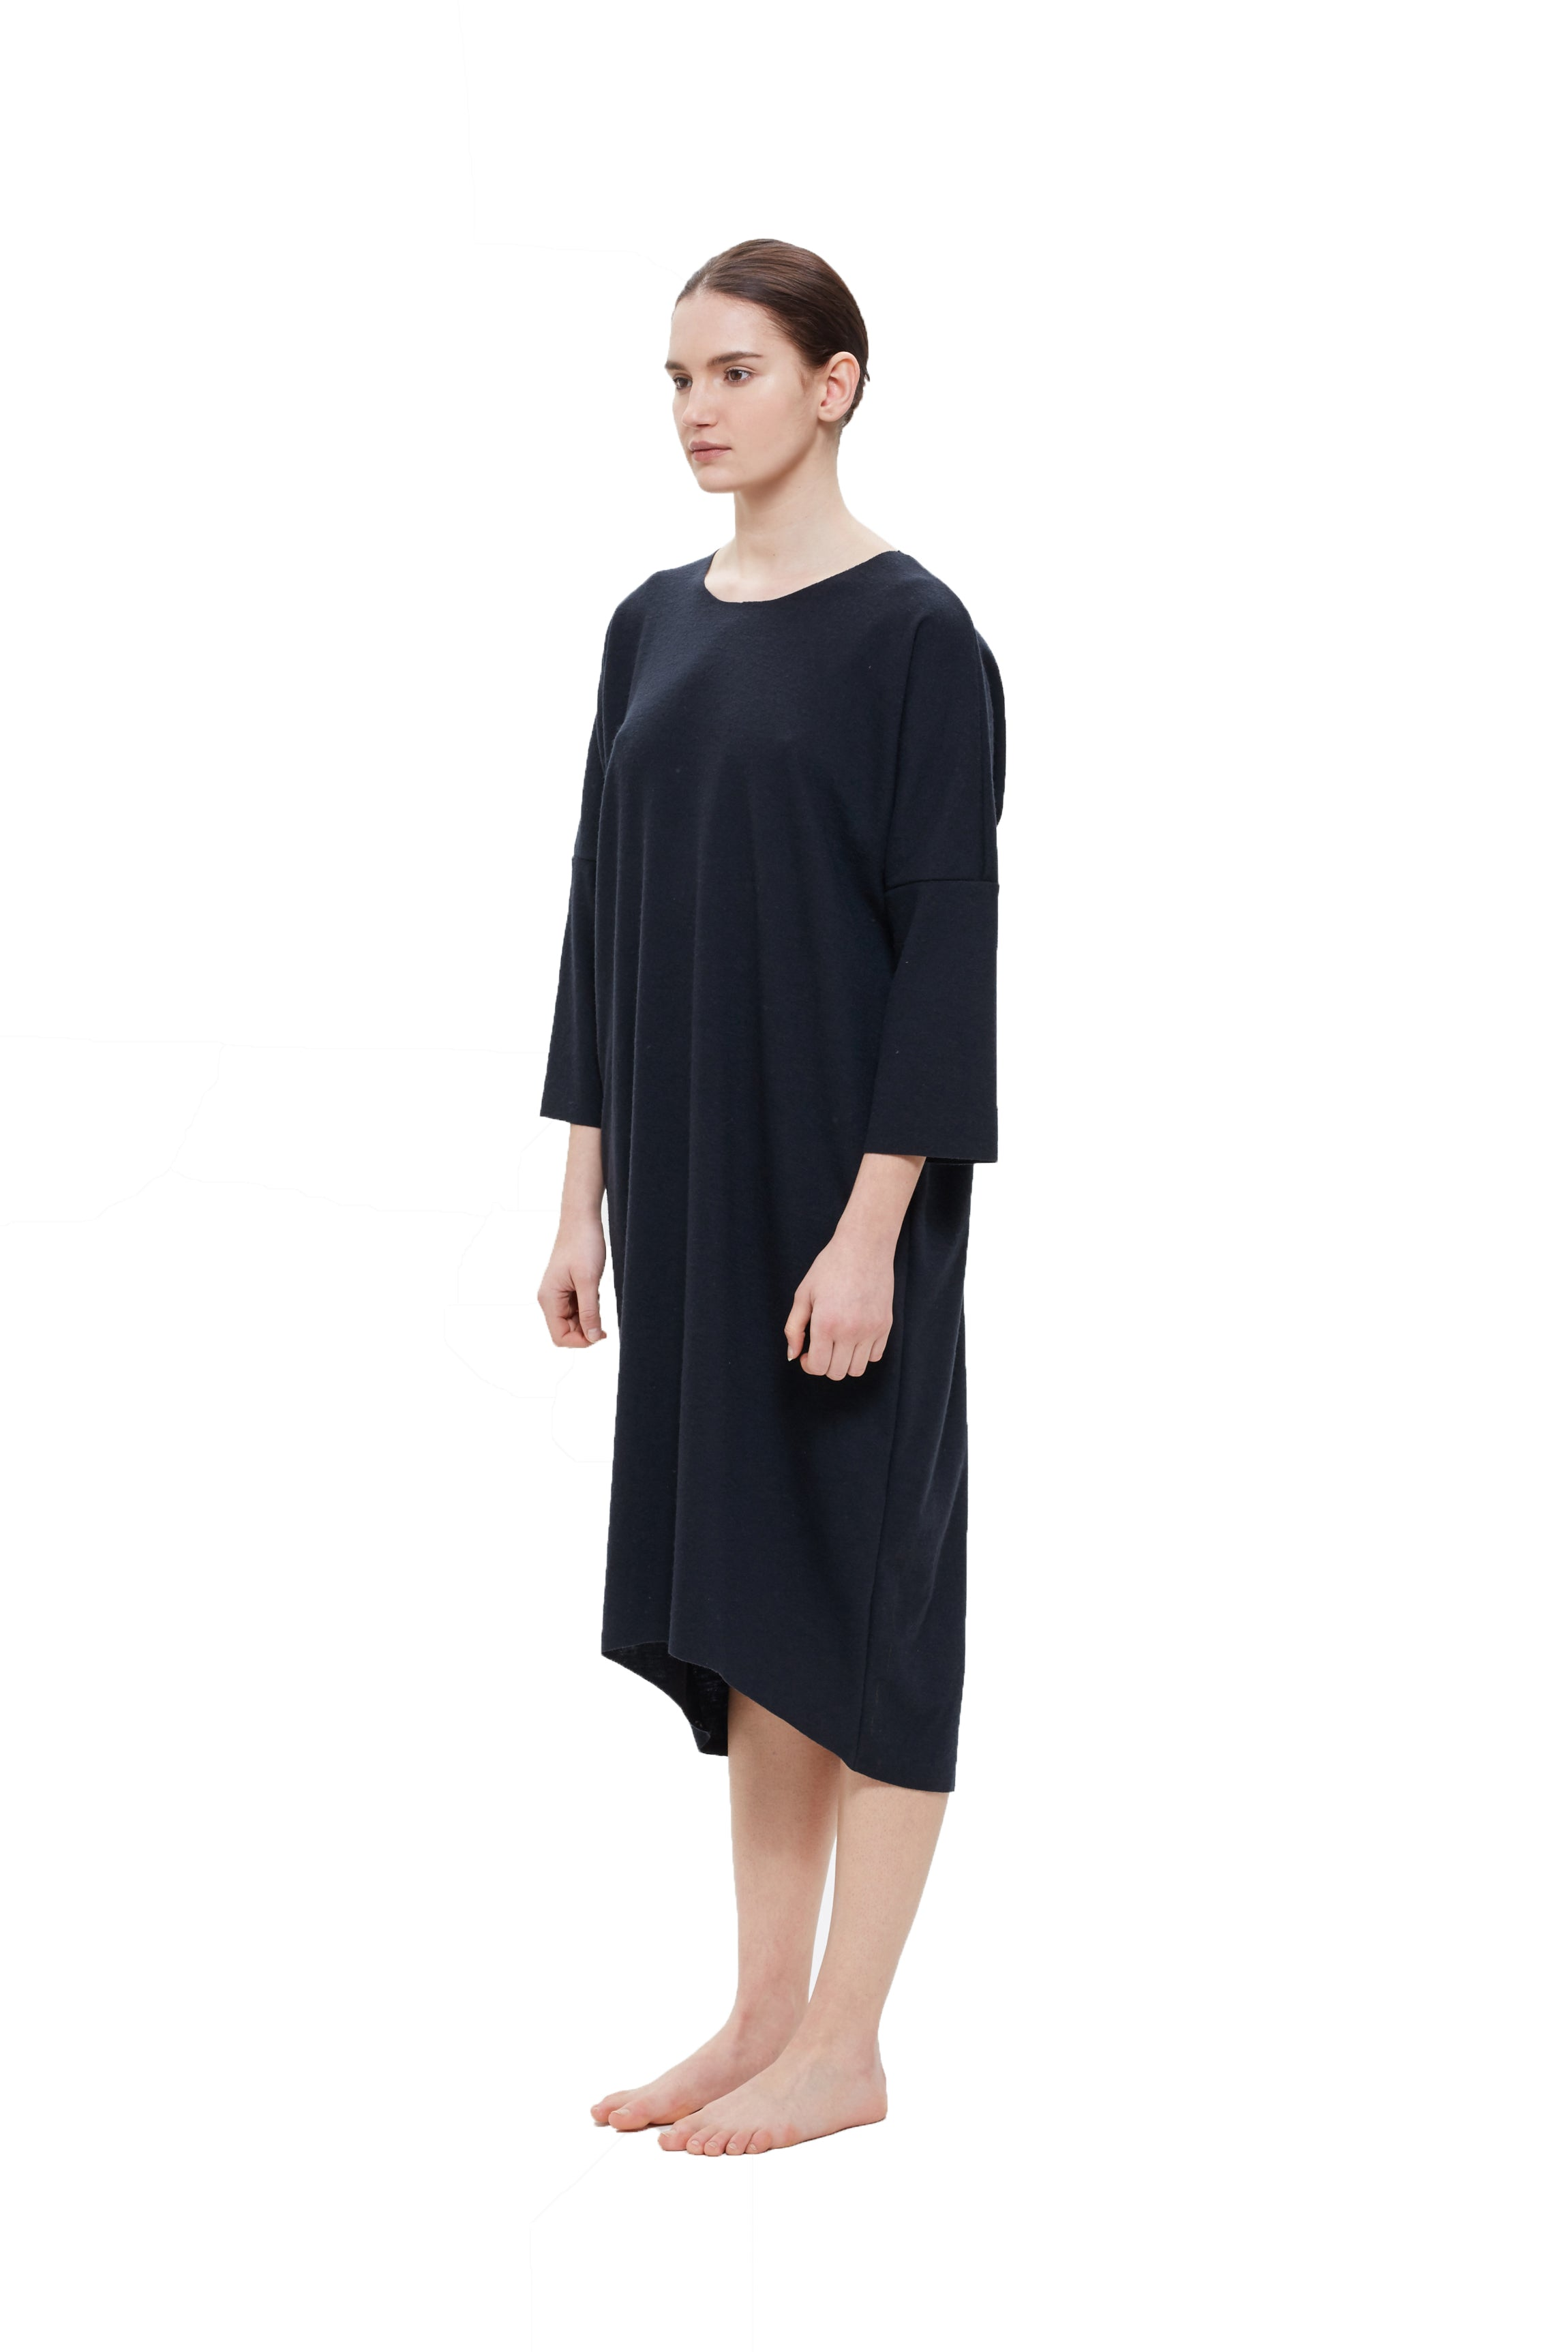 LONG BUD DRESS - MIDNIGHT